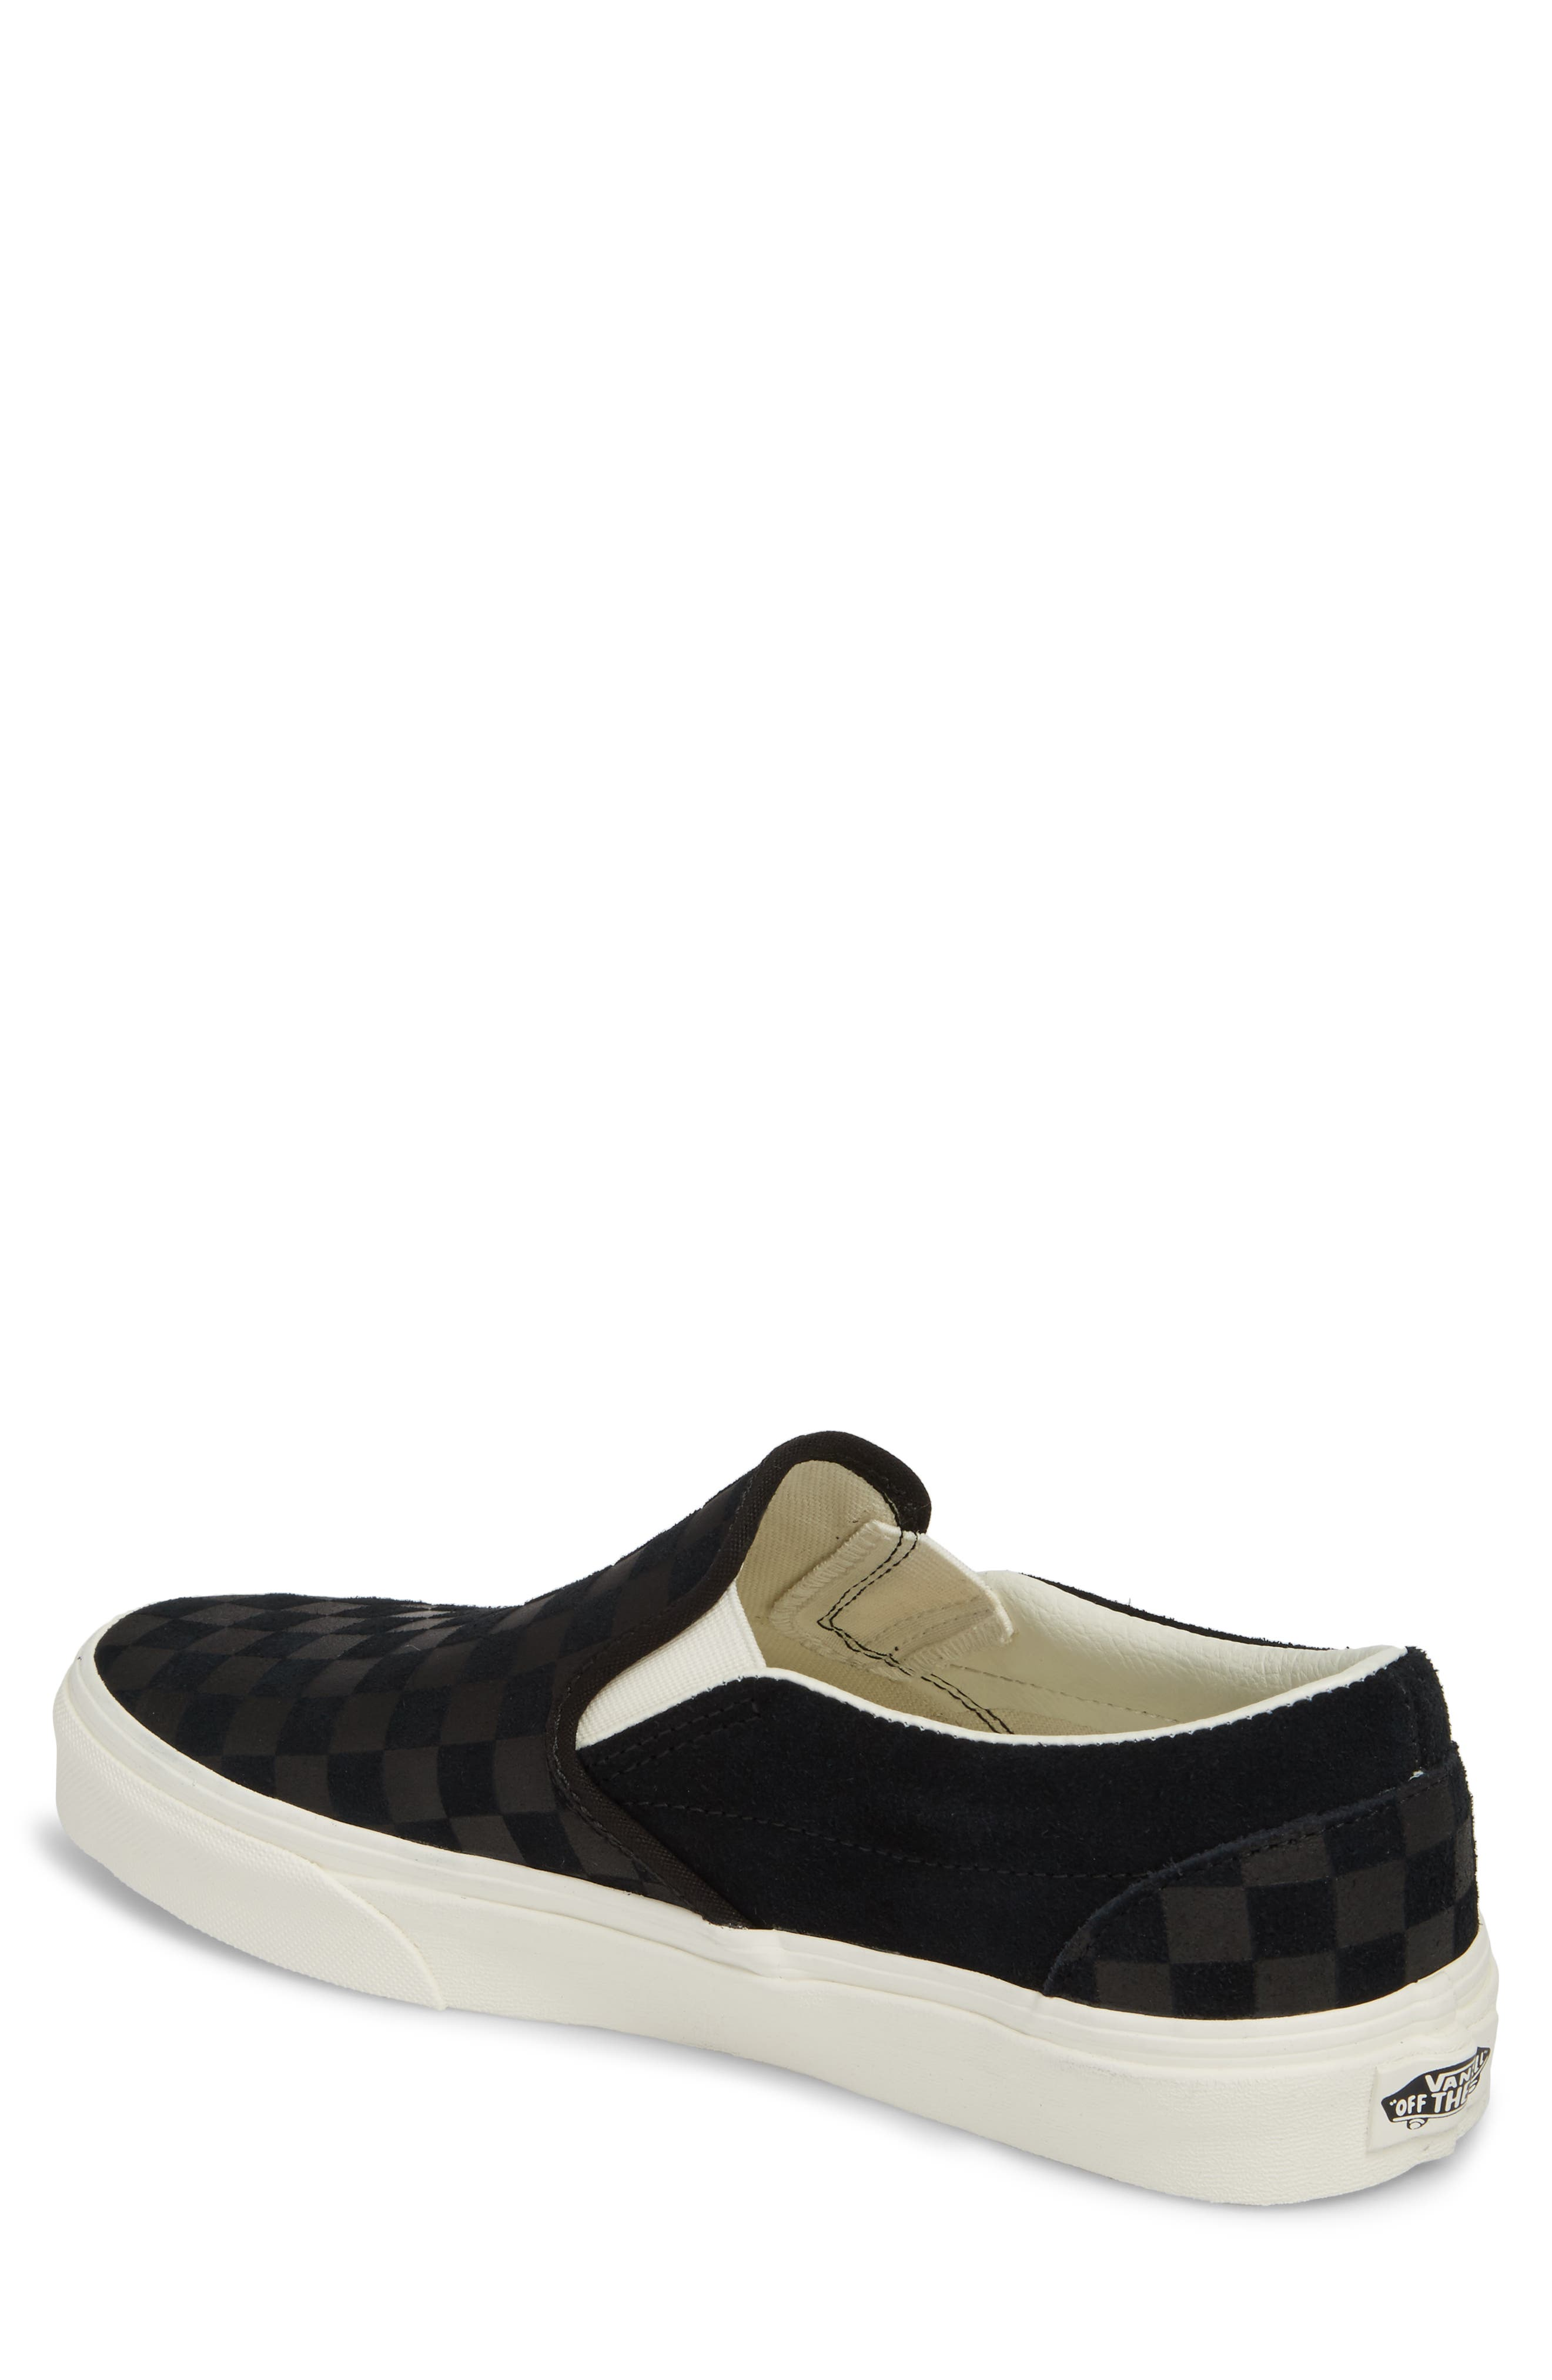 Classic Slip-On Sneaker,                             Alternate thumbnail 2, color,                             001